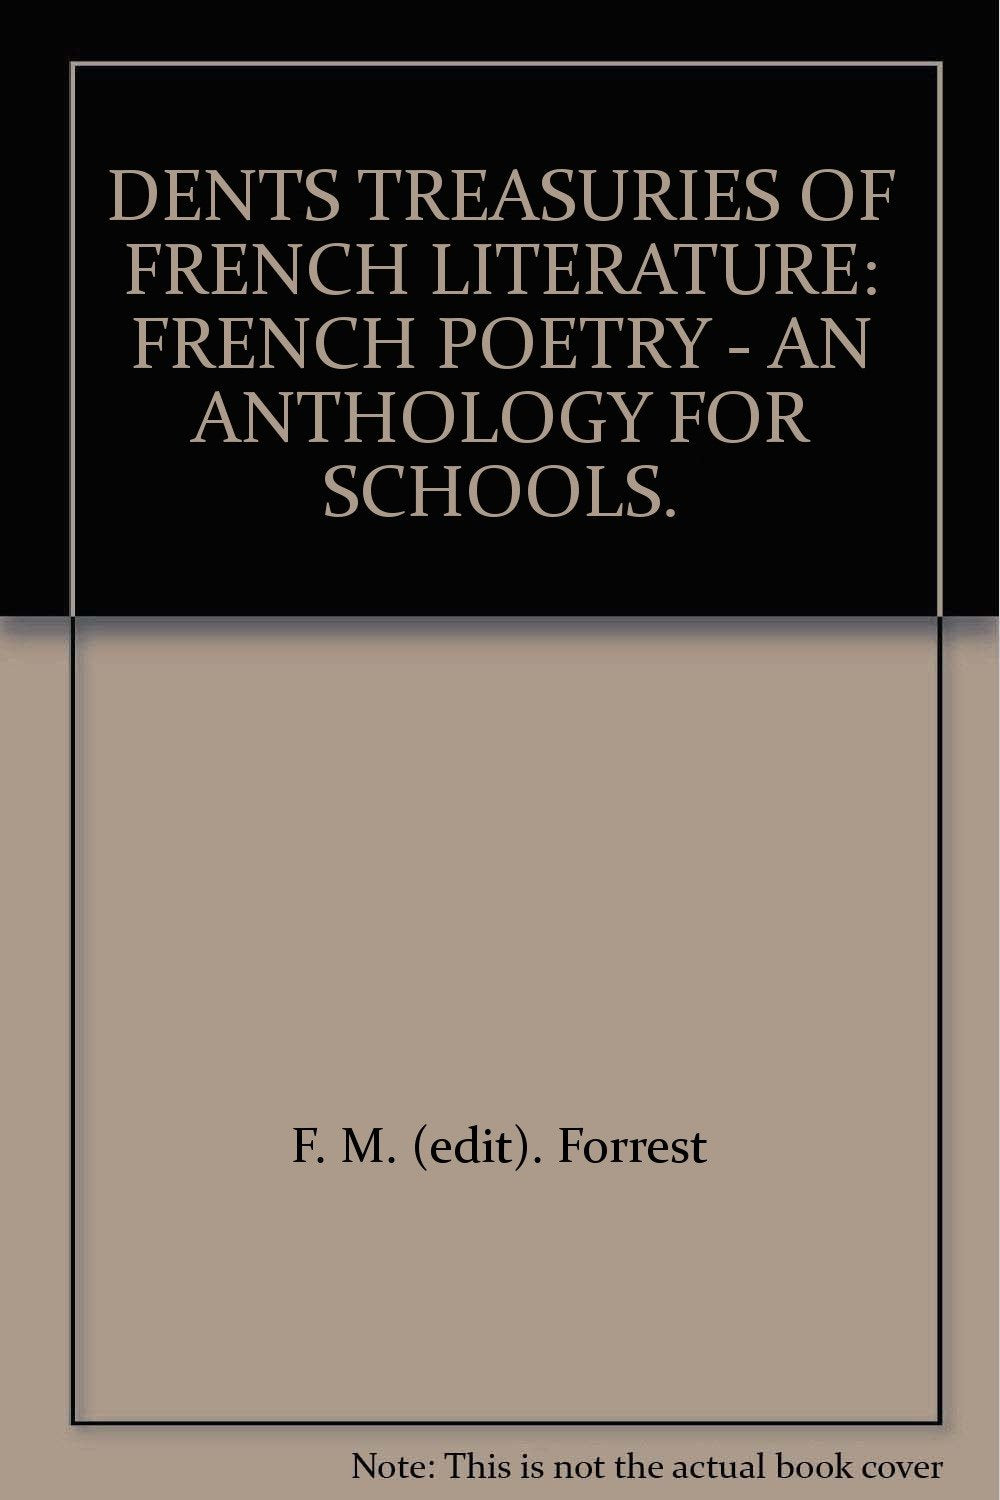 DENTS TREASURIES OF FRENCH LITERATURE: FRENCH POETRY - AN ANTHOLOGY FOR SCHOOLS. [Hardcover] Forrest, F. M. (edit).